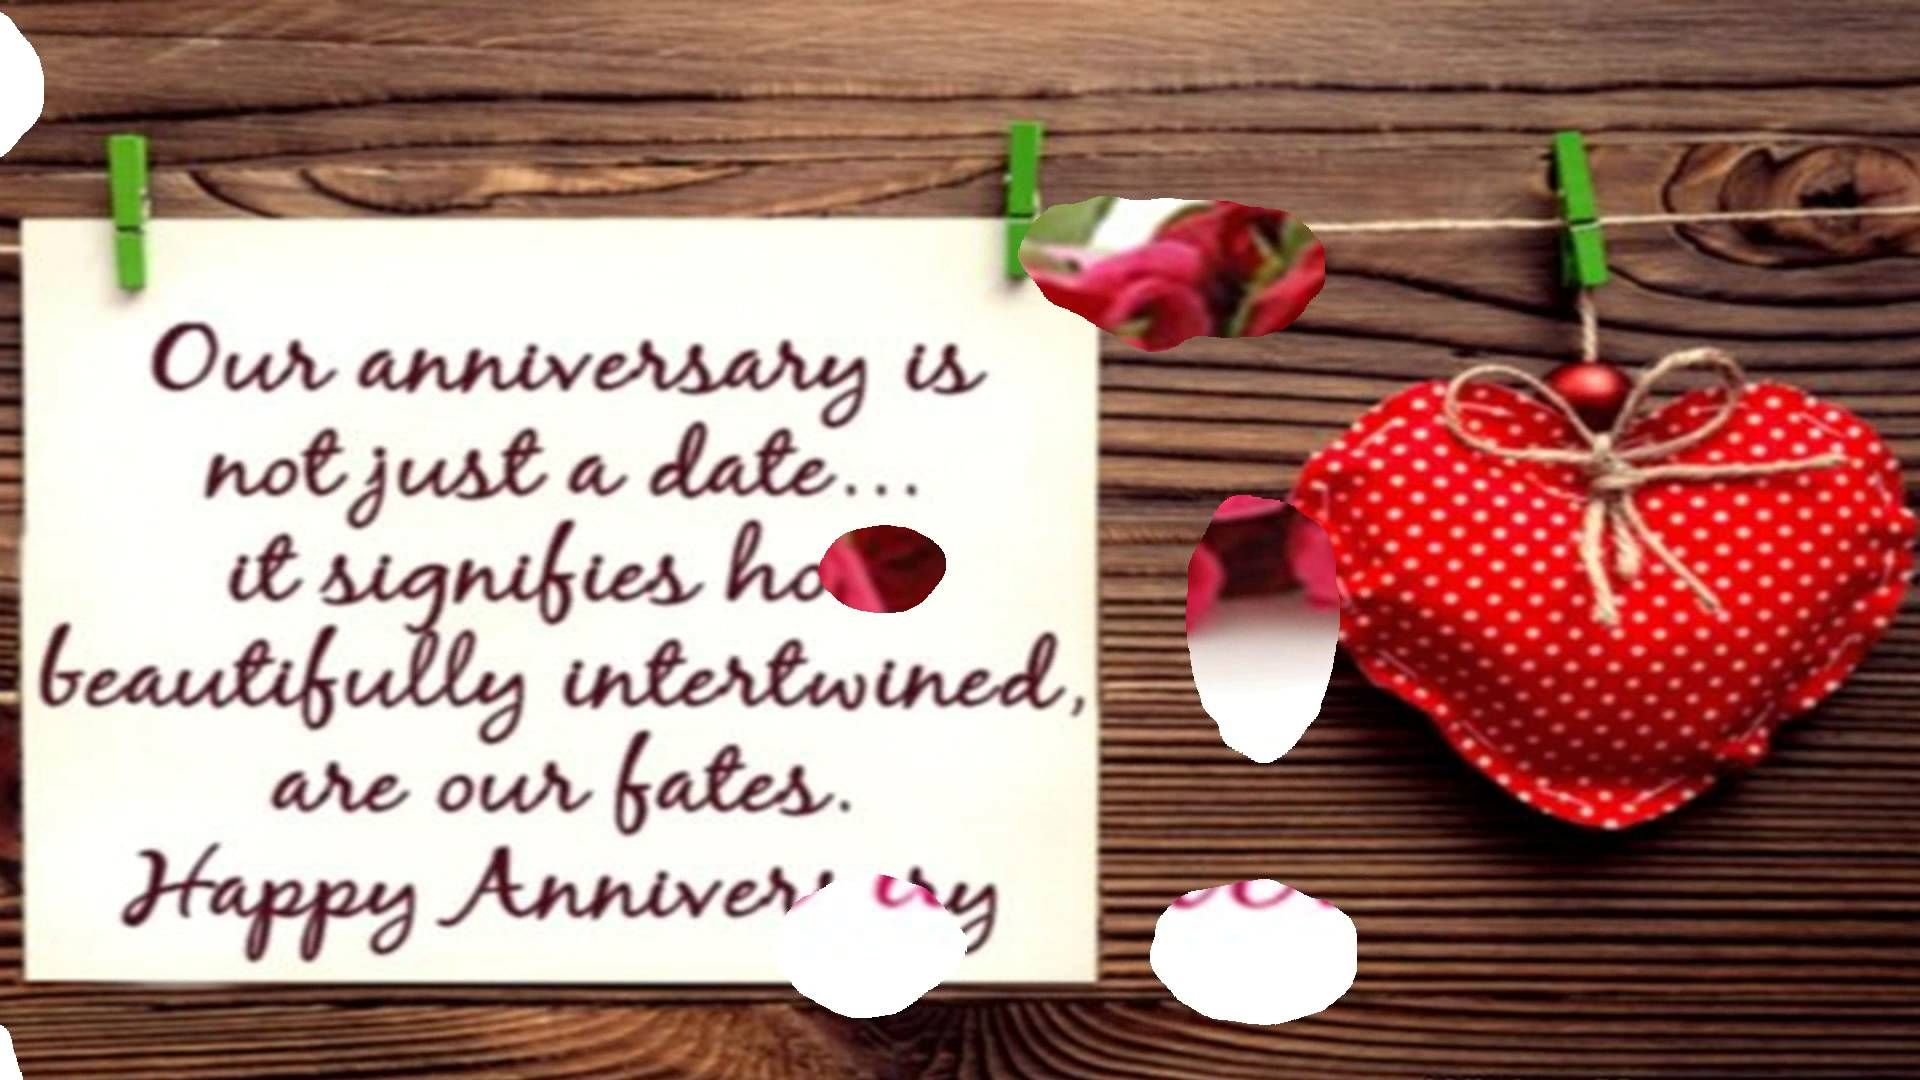 Happy Anniversary Wishes For Couple Anniversary wishes